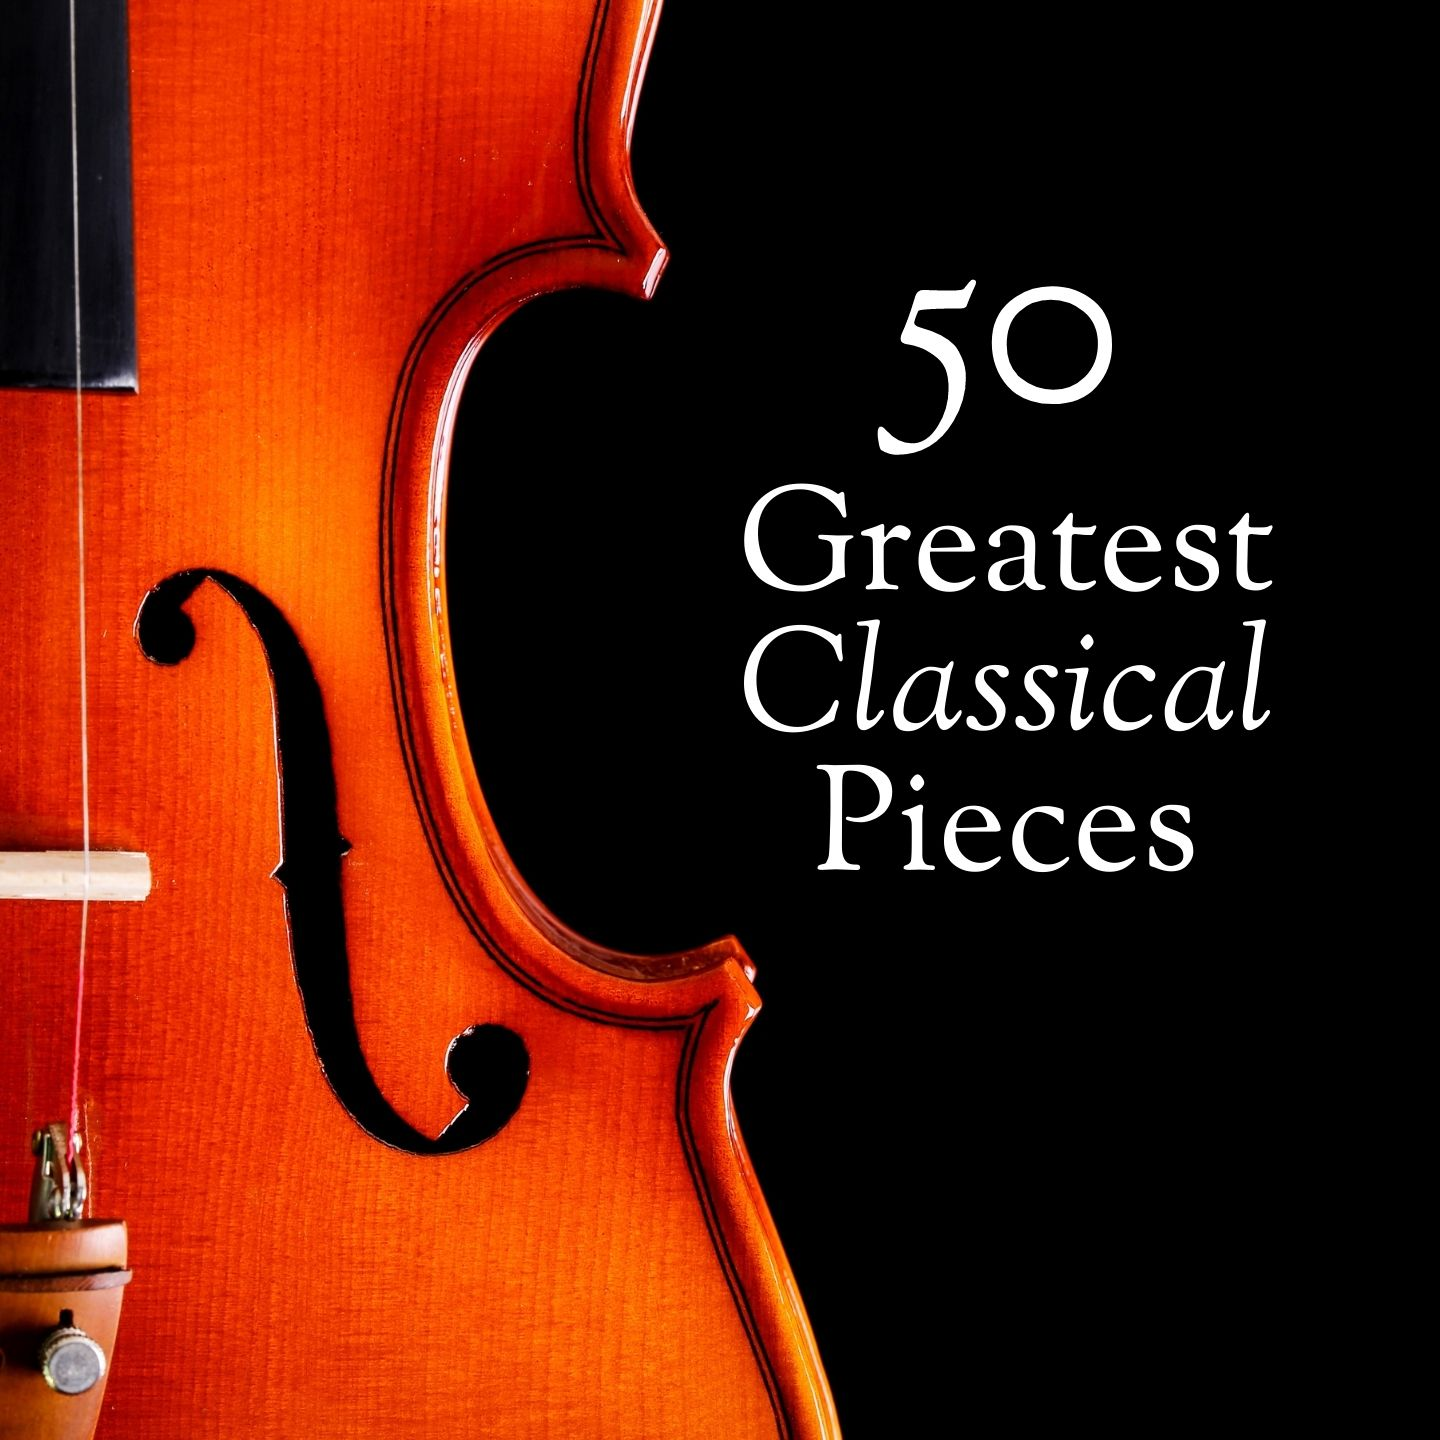 The Best of Classical Music - 50 Greatest Pieces: Mozart, Beethoven, Chopin, Bach..